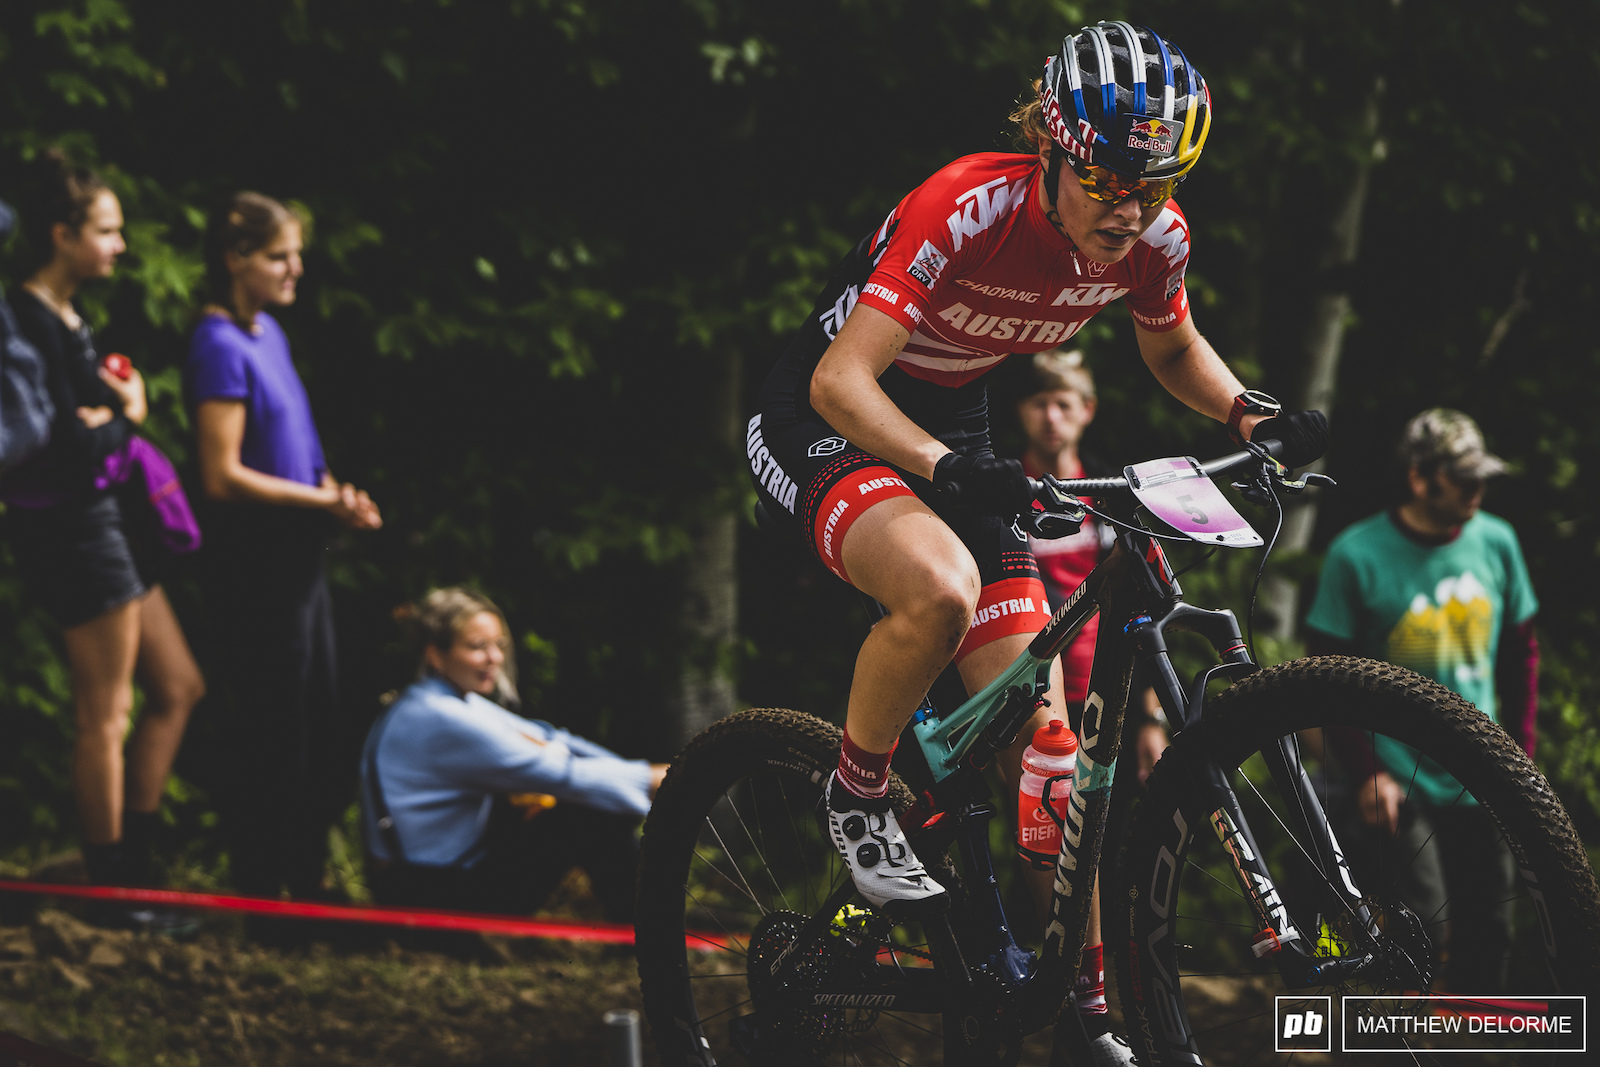 Laura Stigger took second in her best result since Albstadt.